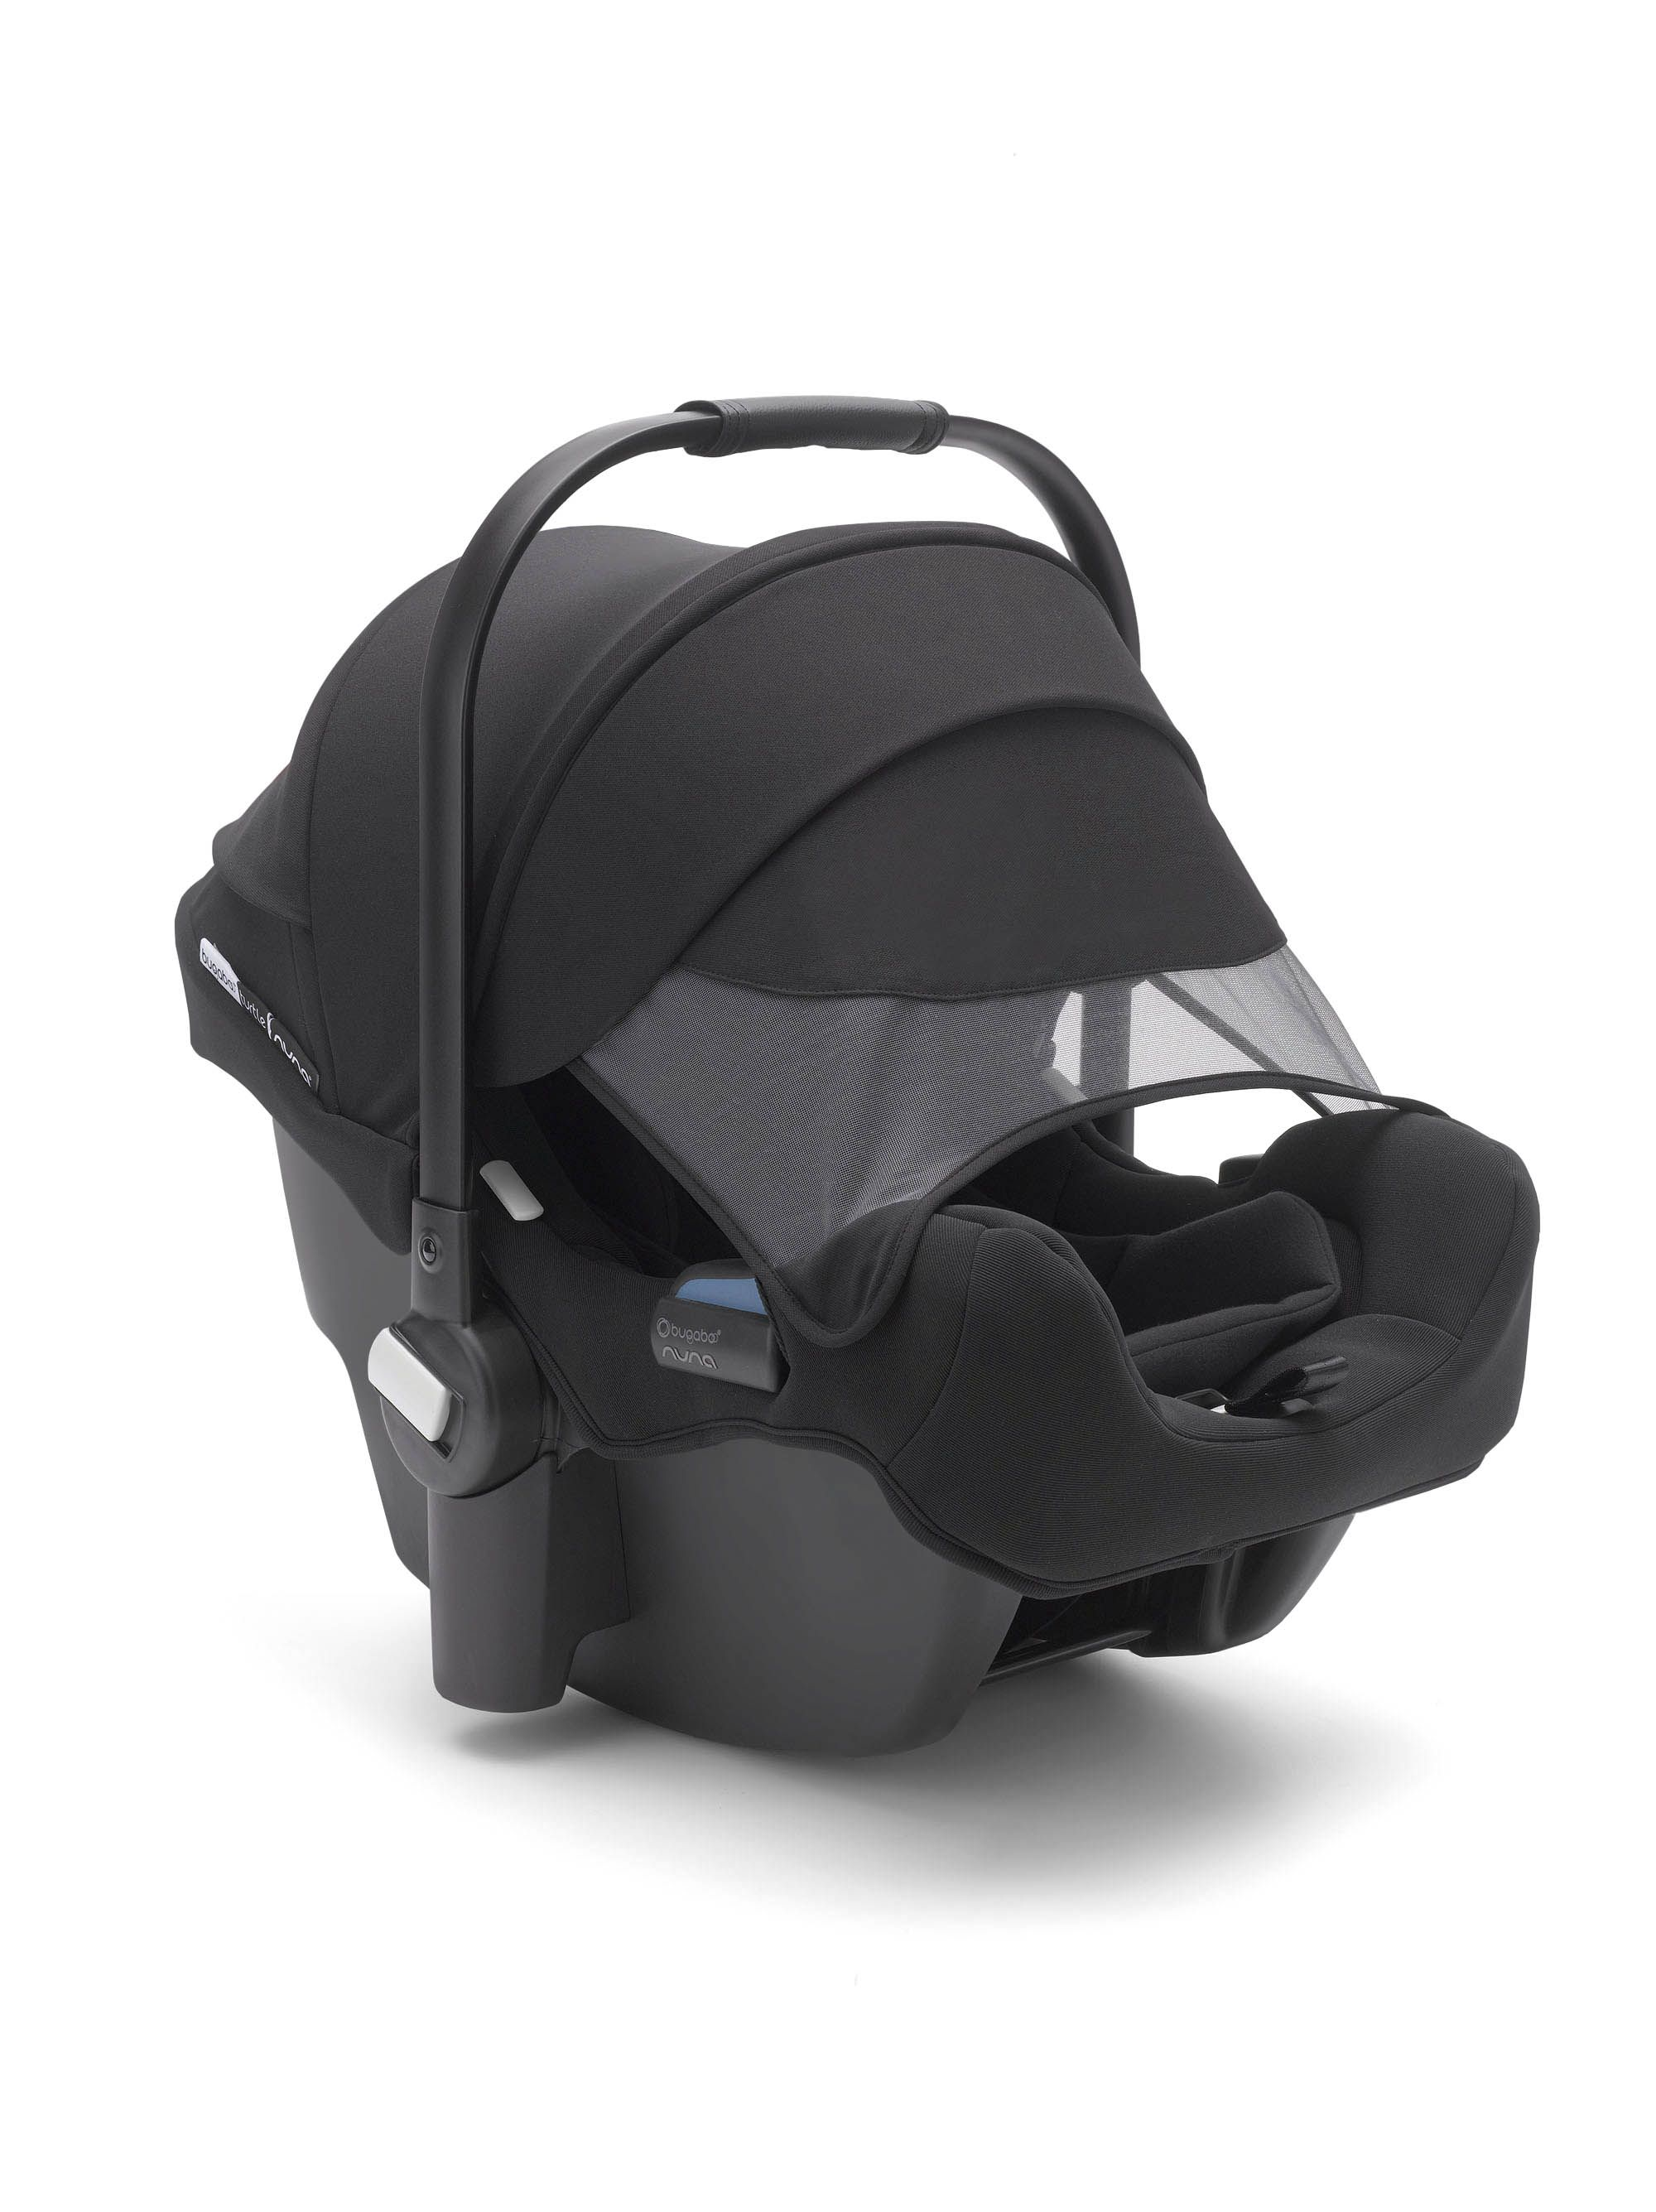 Featuring a signature Bugaboo canopy with mesh peekaboo